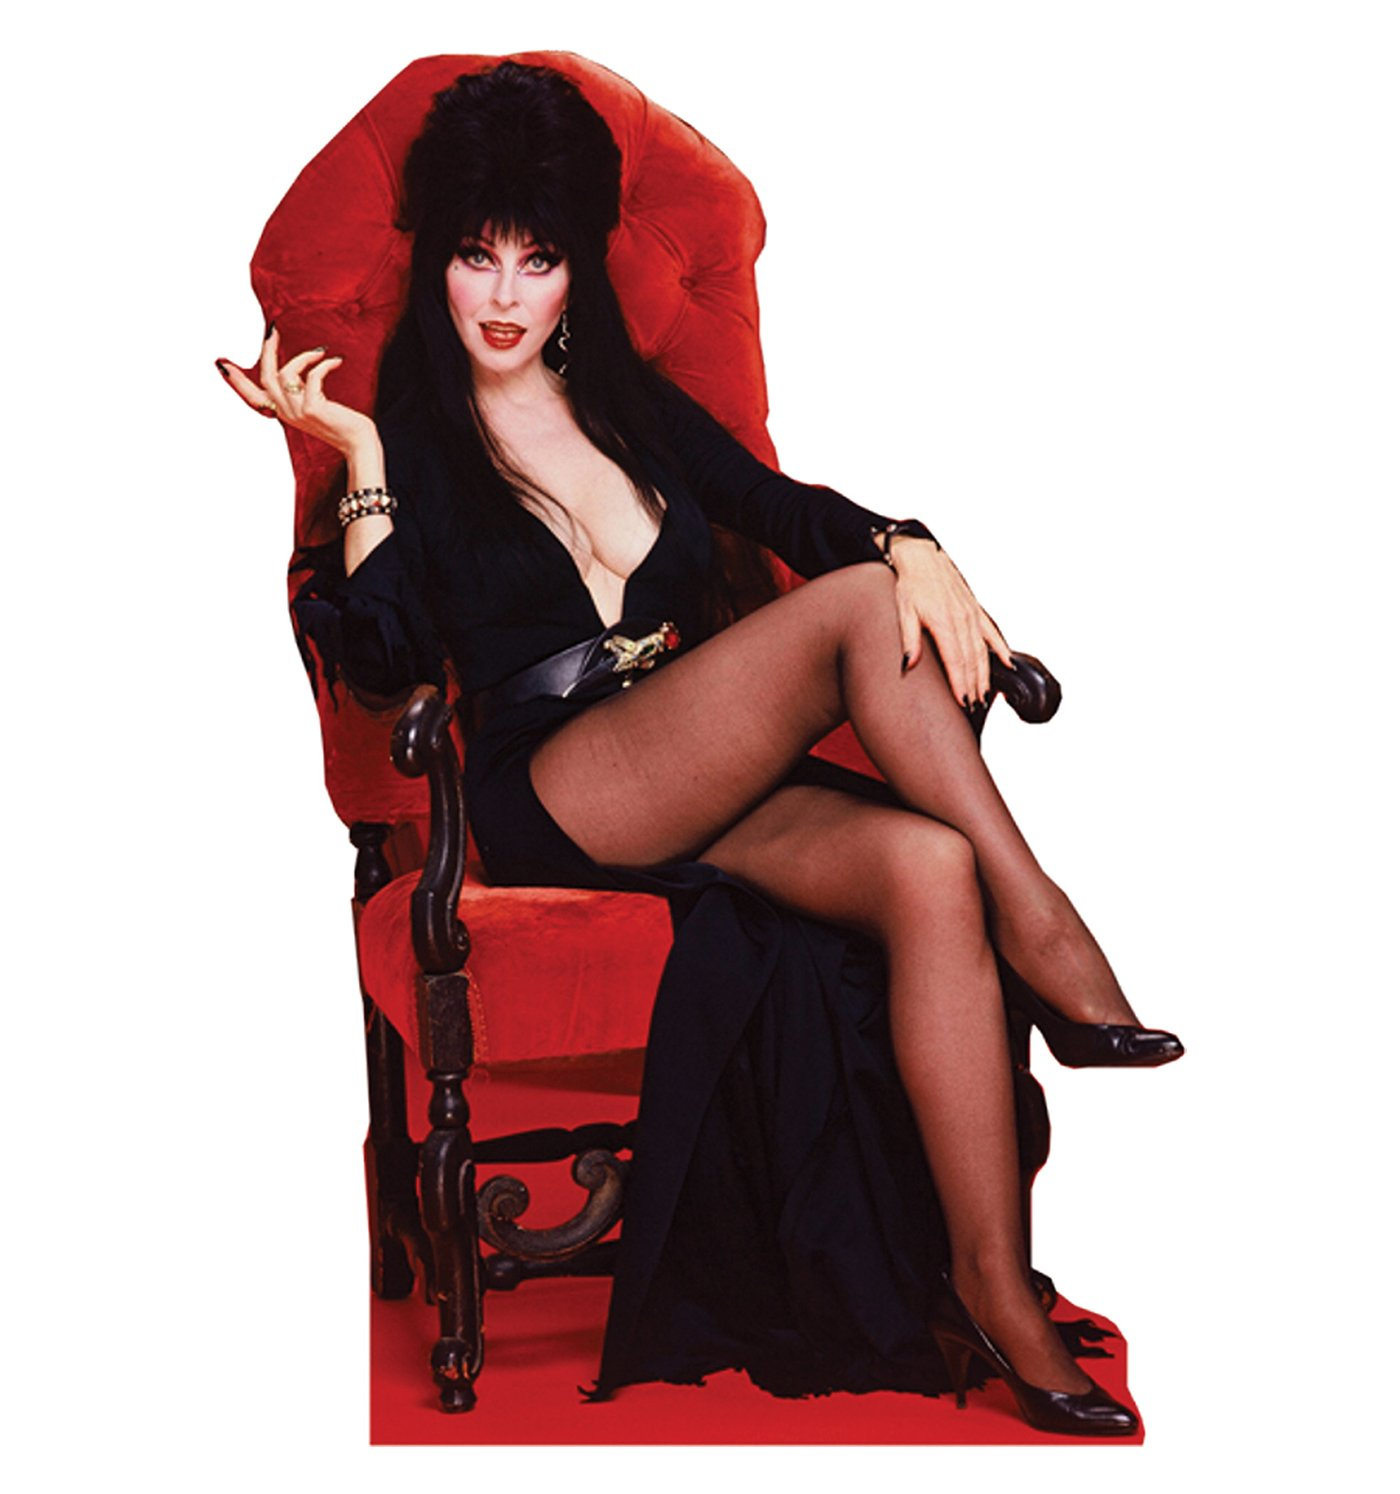 Elvira on Red Chair Lifesize Cardboard Standup